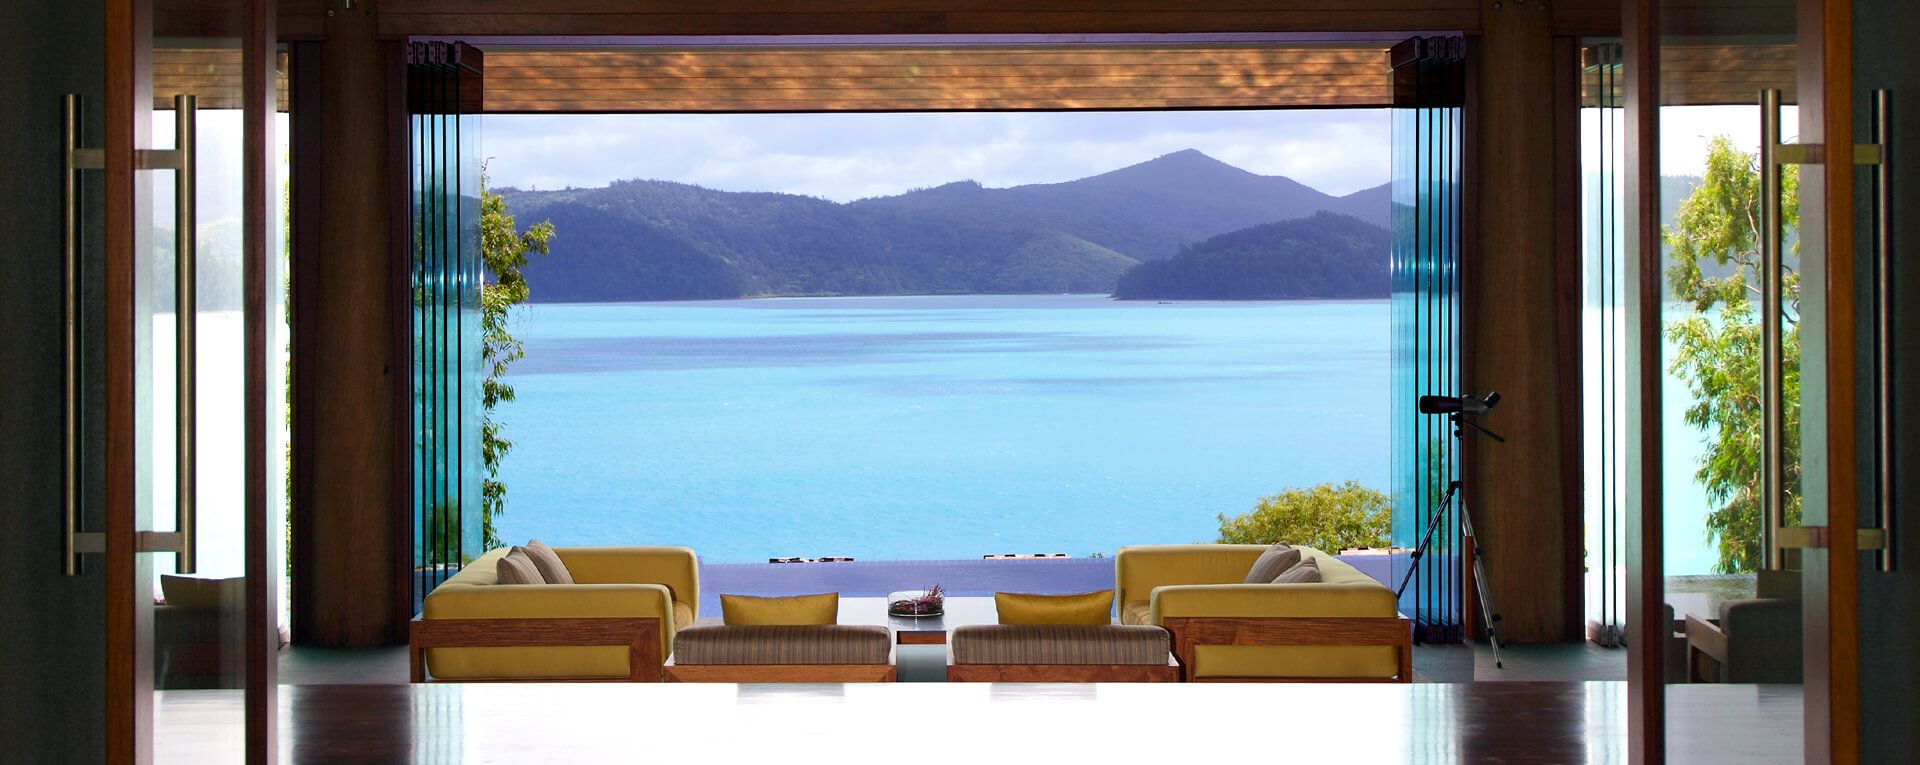 Qualia - Australia Luxury Resort